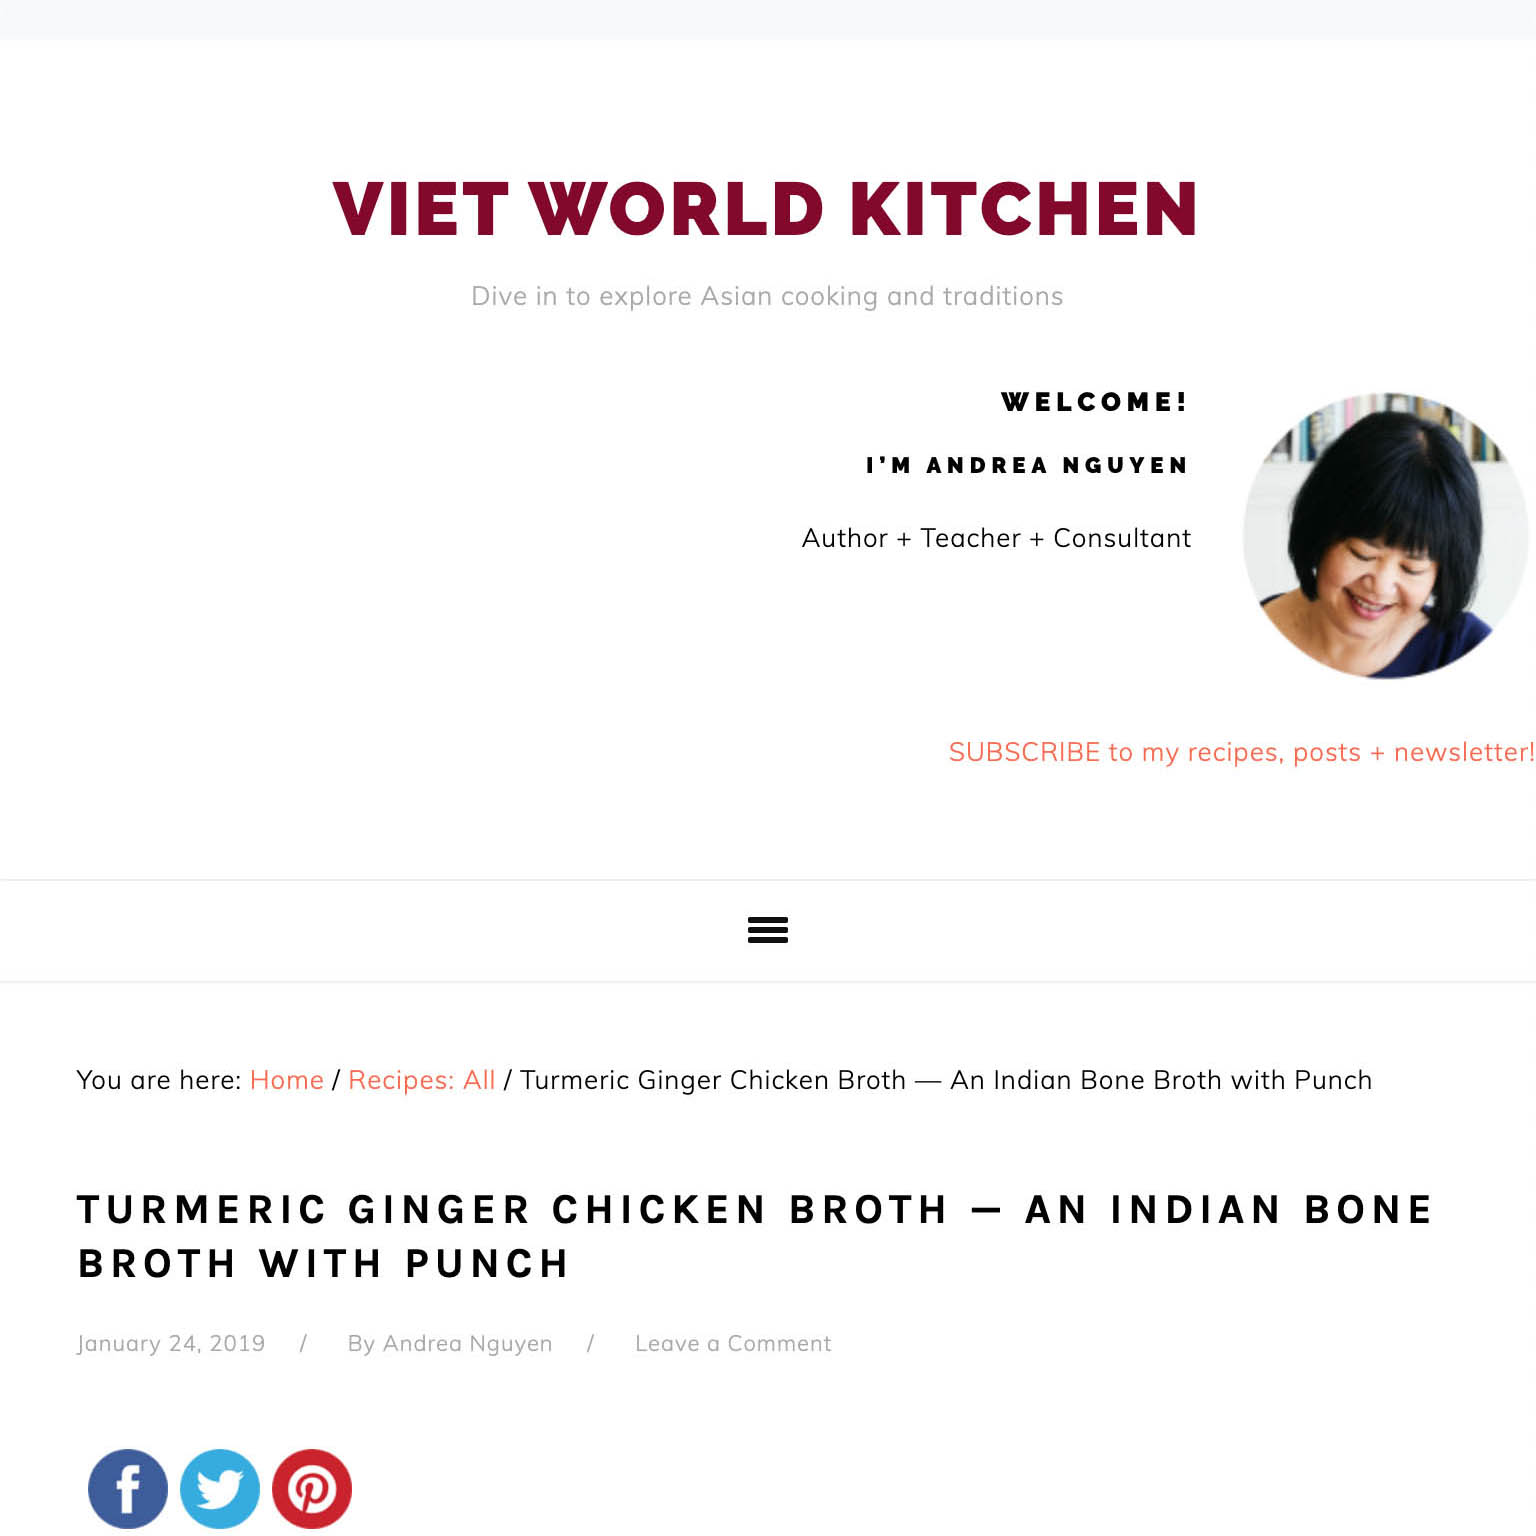 viet-world-kitchen-tumeric-ginger-chicken-broth.jpg